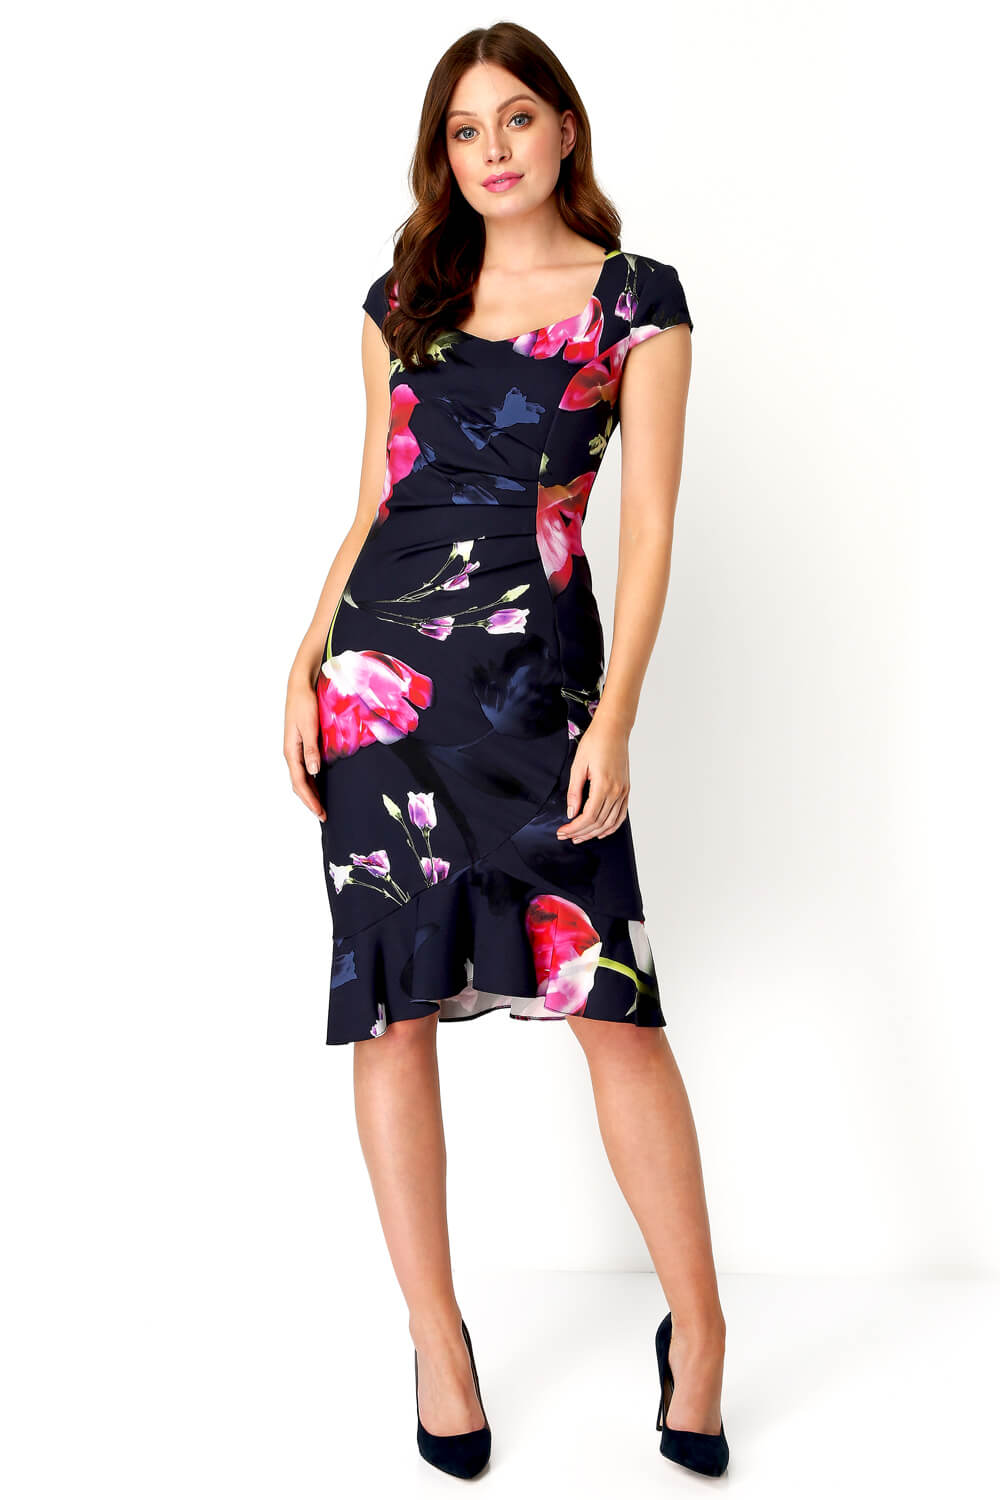 Roman-Originals-Women-Floral-Print-Midi-Ruffle-Hem-Dress thumbnail 15